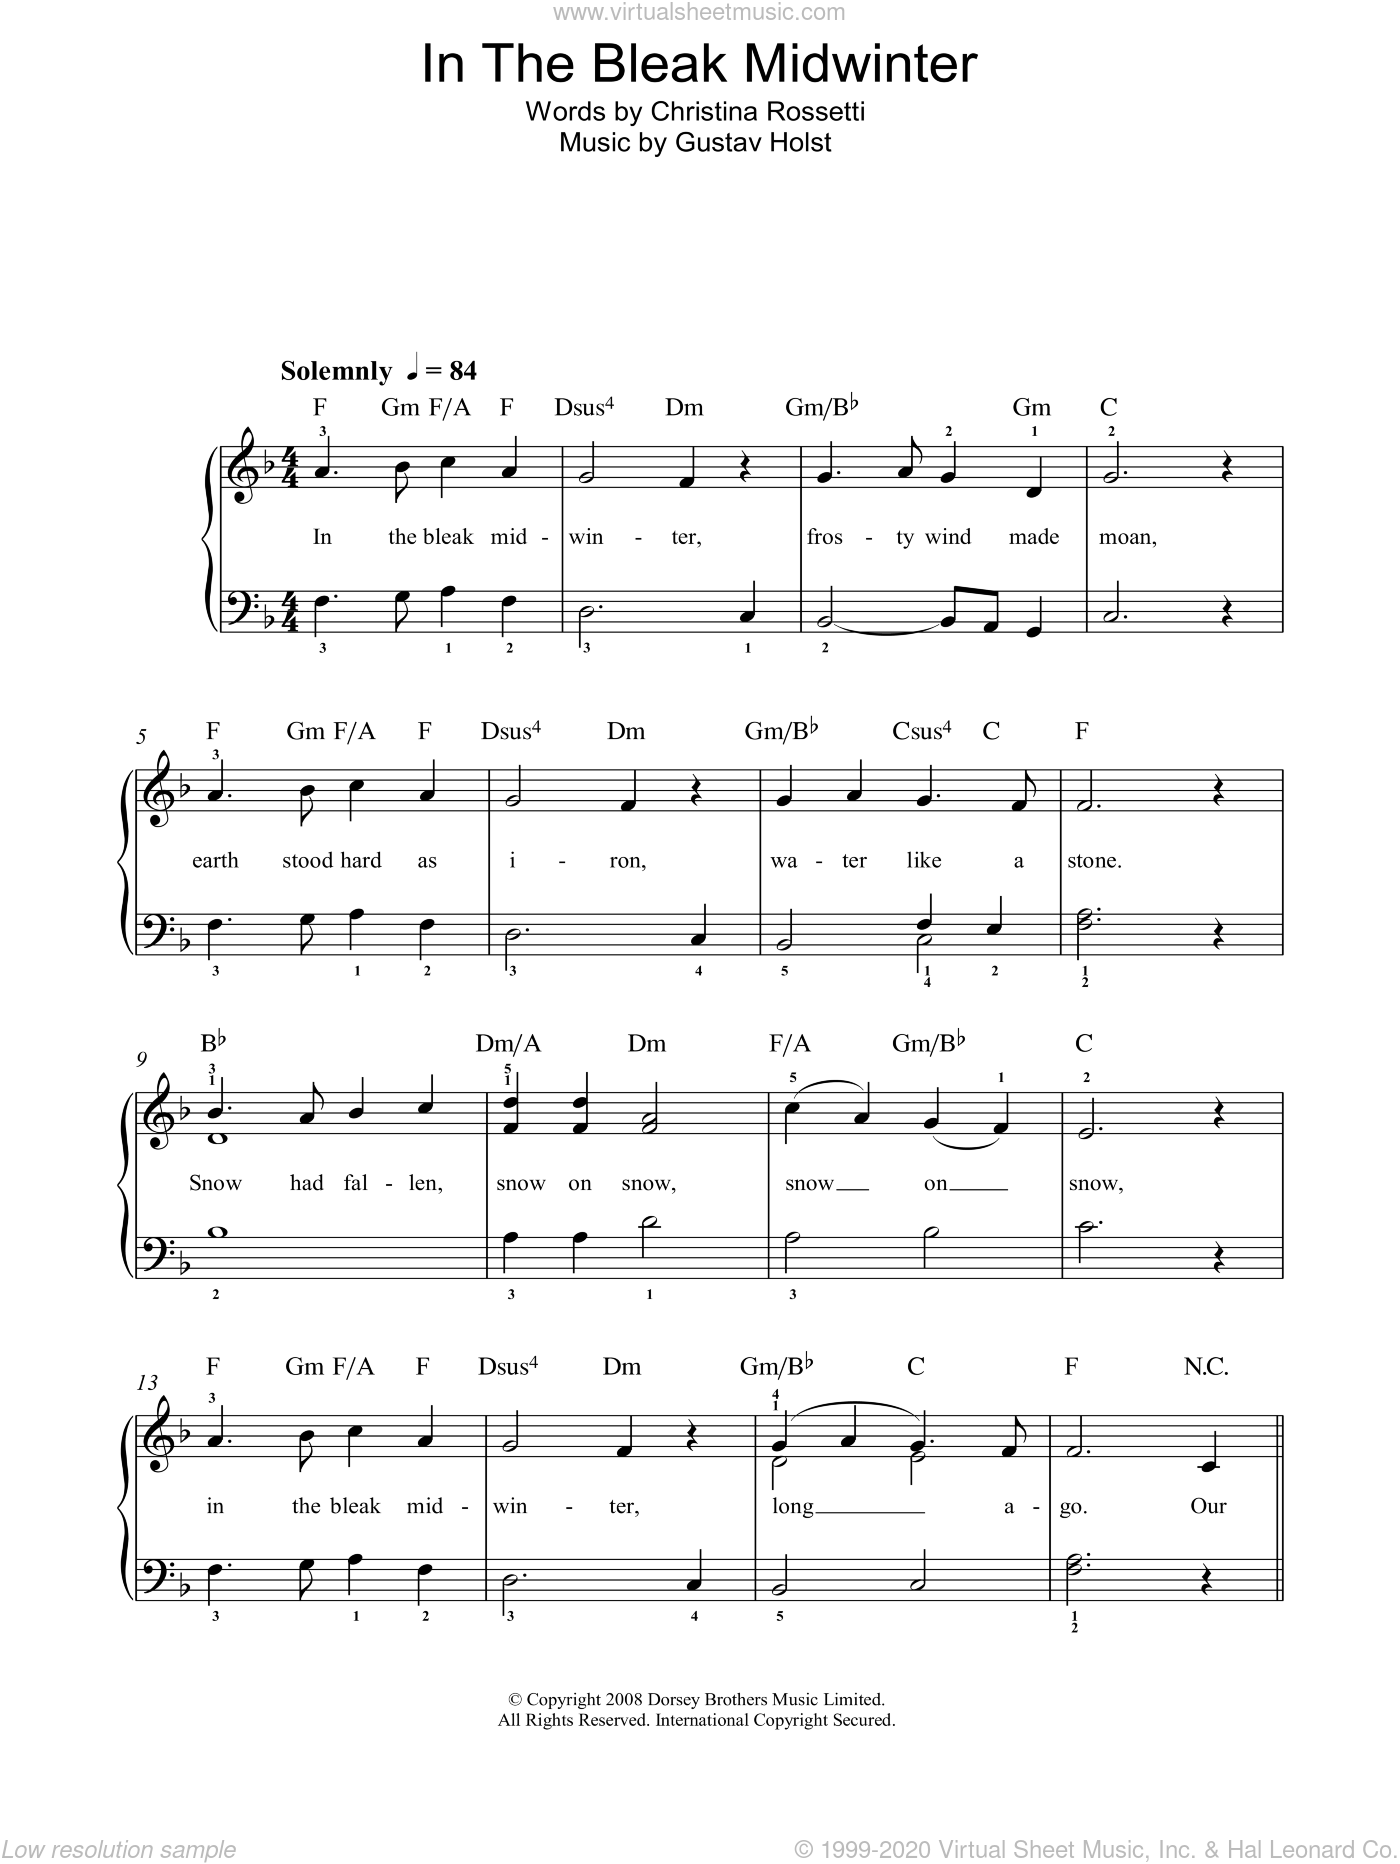 In The Bleak Midwinter sheet music for piano solo by Christina Rossetti and Gustav Holst